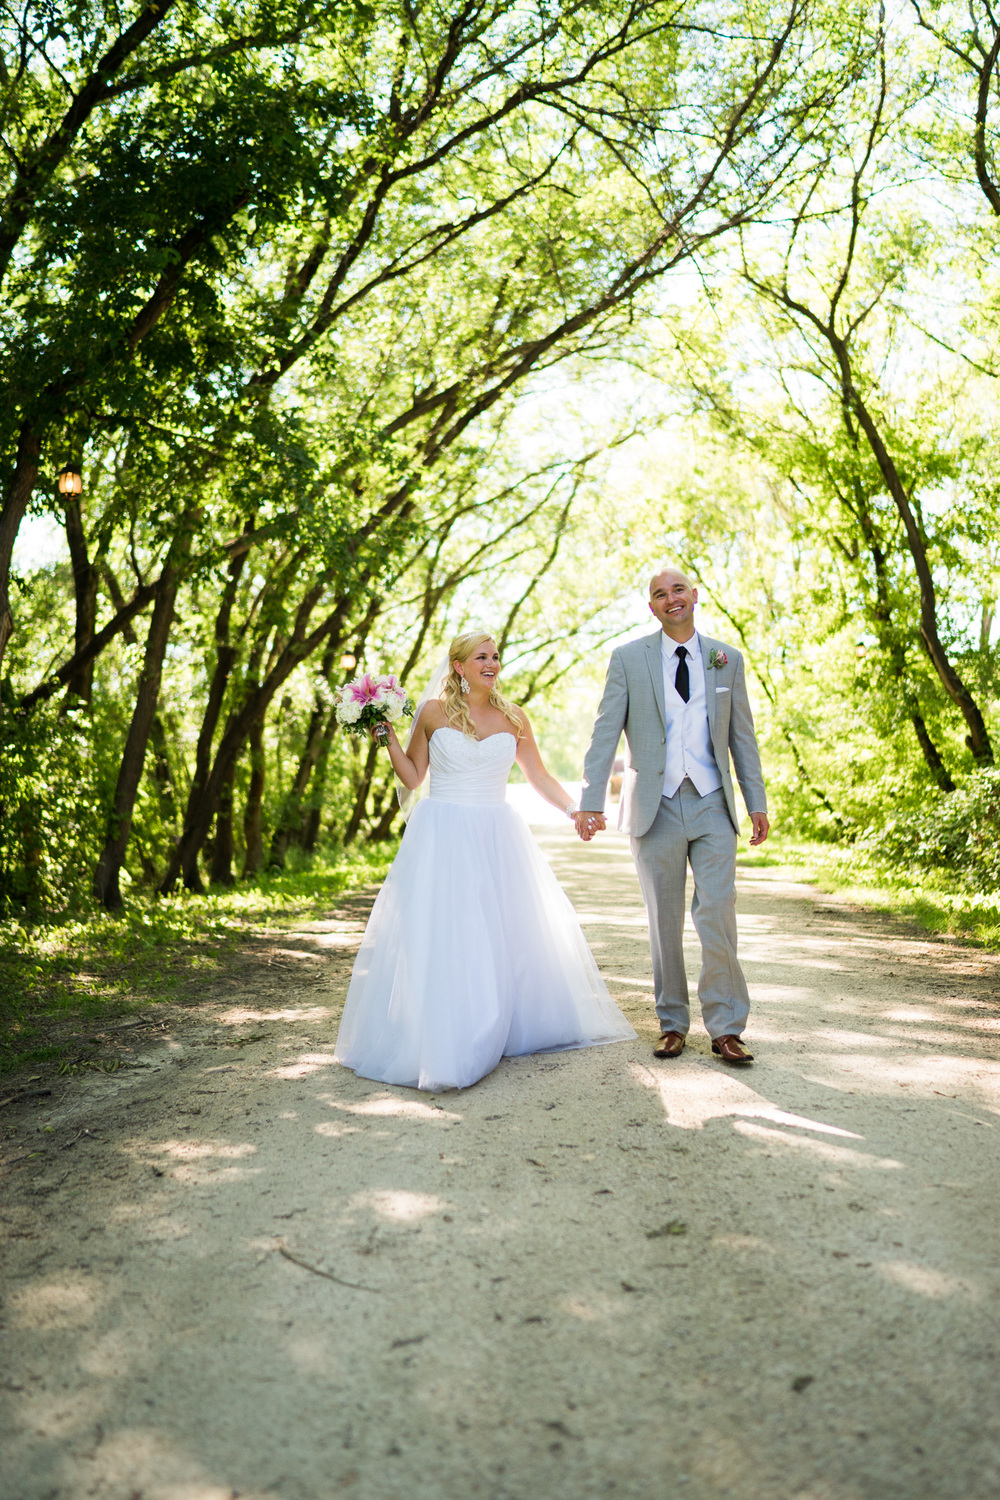 Jenn and Adam - Evergreen Village Wedding - COJO Photo-1049.jpg